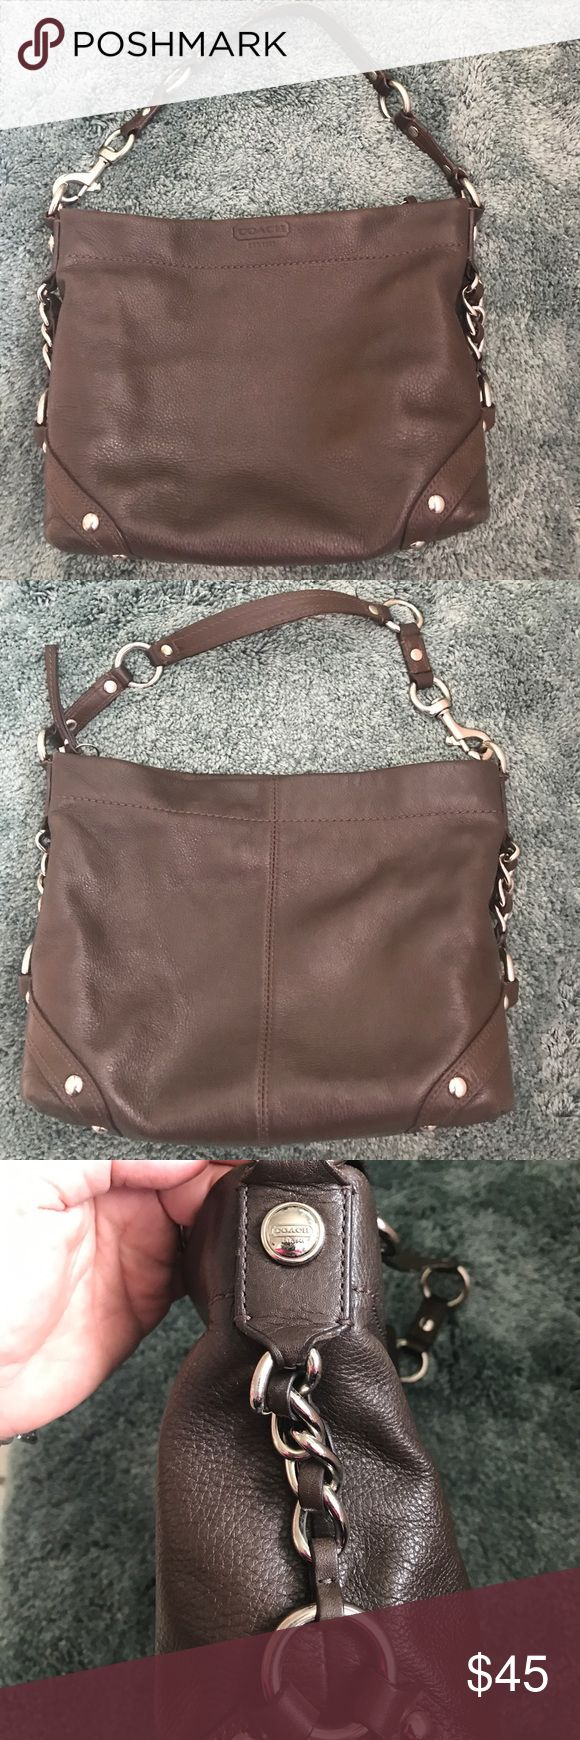 Lovely Dark Brown Coach Purse! Purple interior that needs some cleaning!  Still in pretty good shape! Coach Bags Shoulder Bags